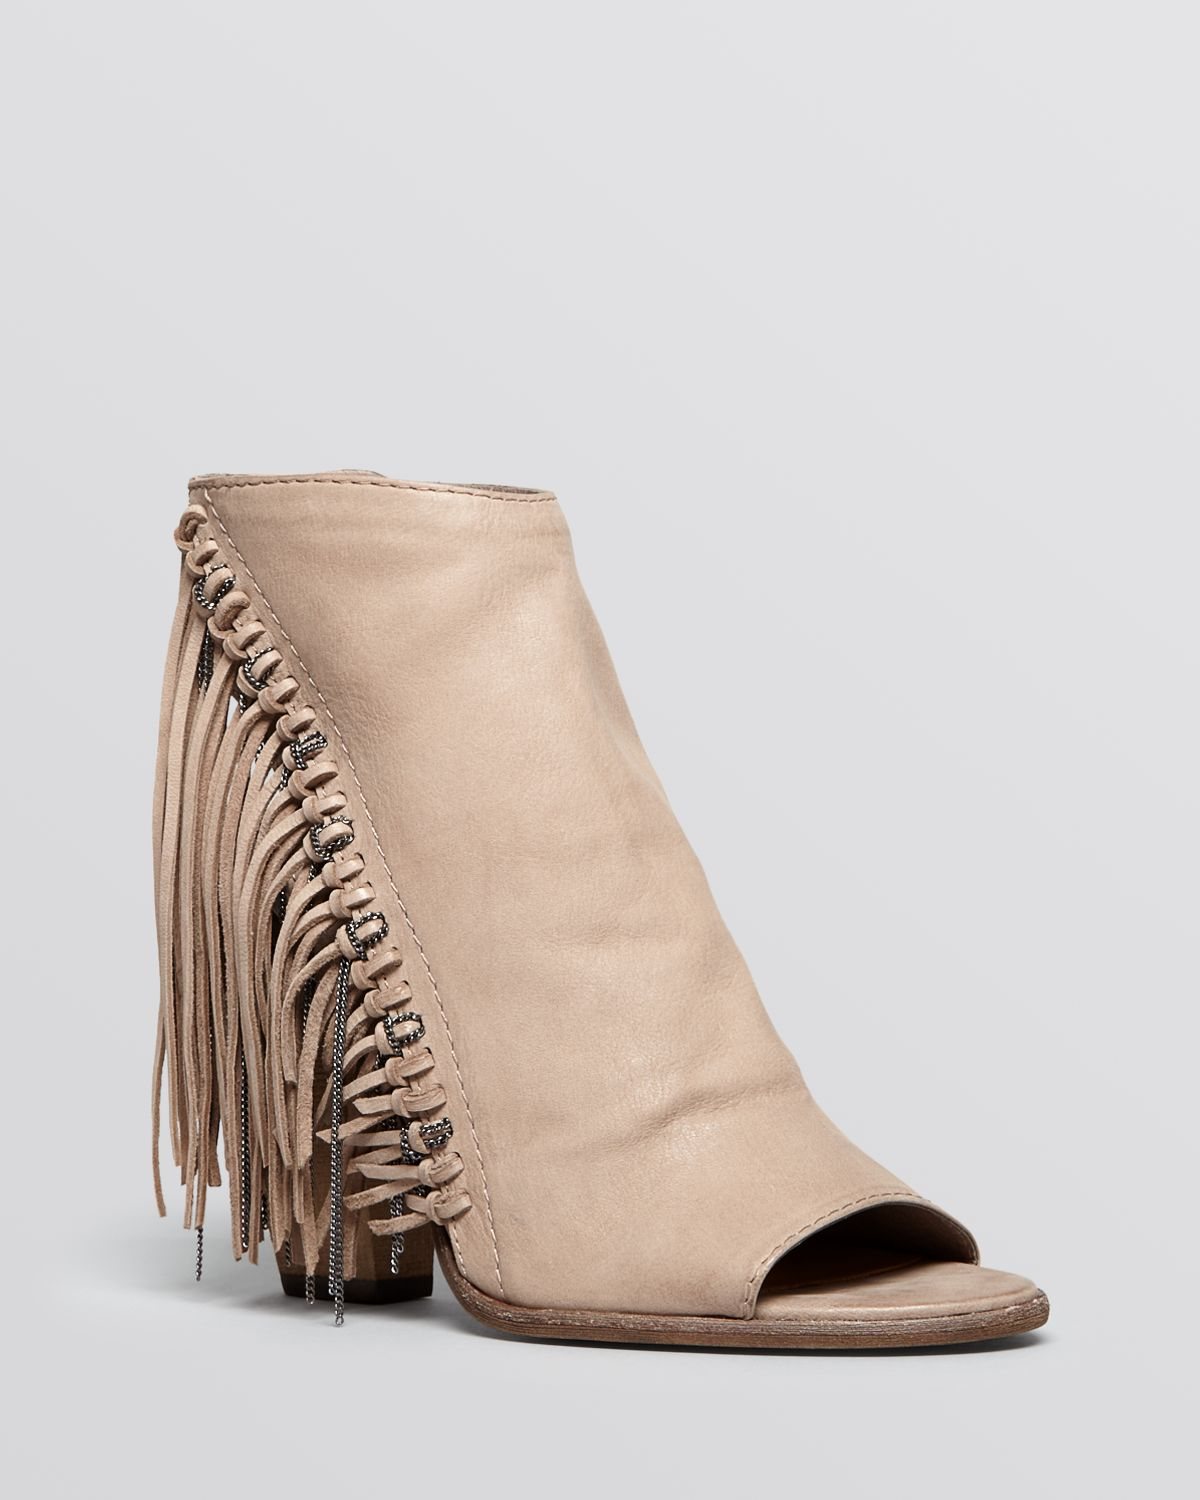 Dolce vita Open Toe Booties - Noralee Fringe in Gray | Lyst